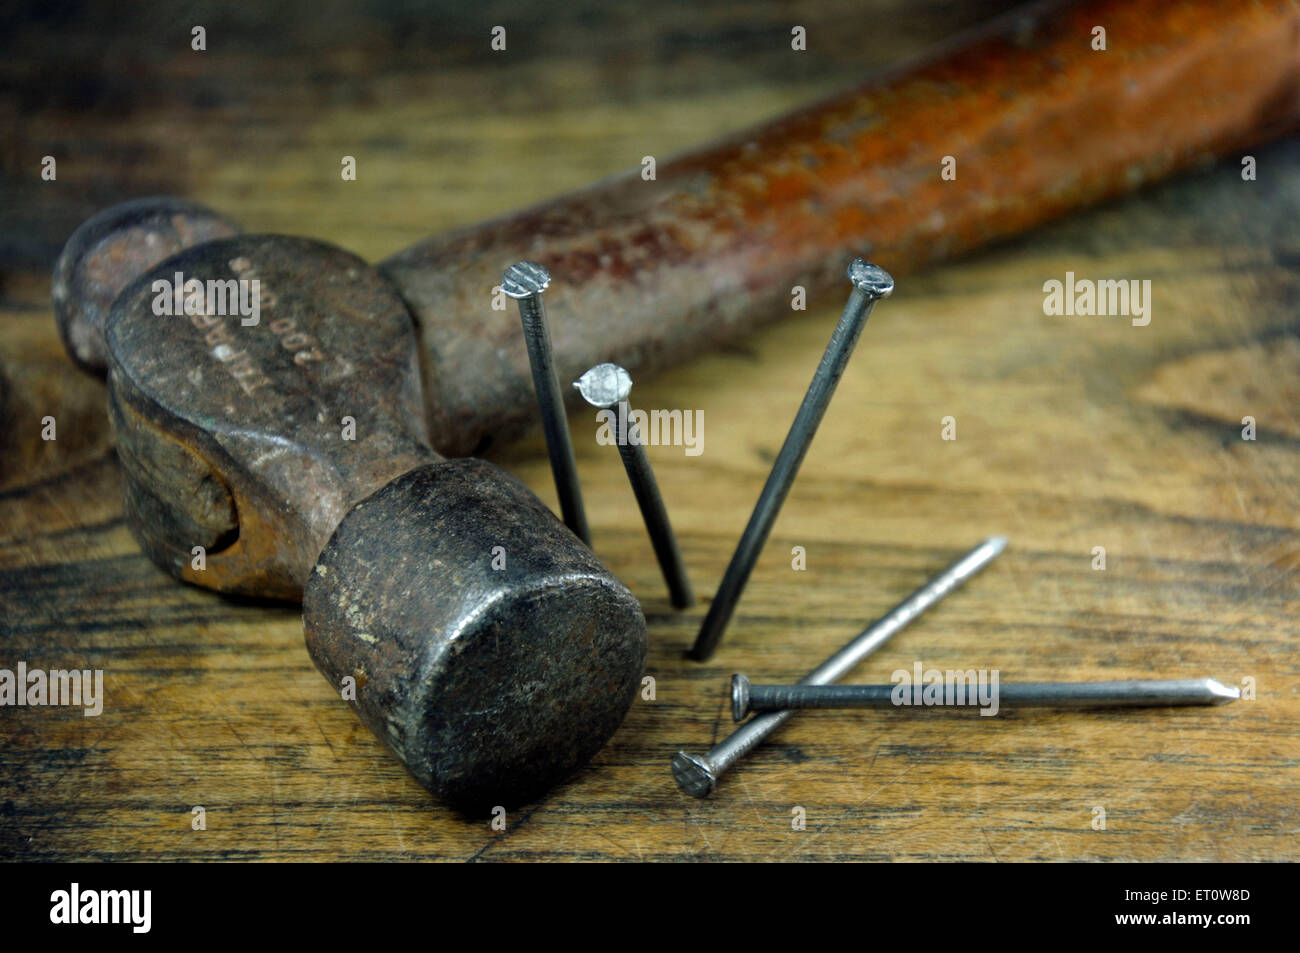 Hammer and nails on wood plank India Asia - Stock Image